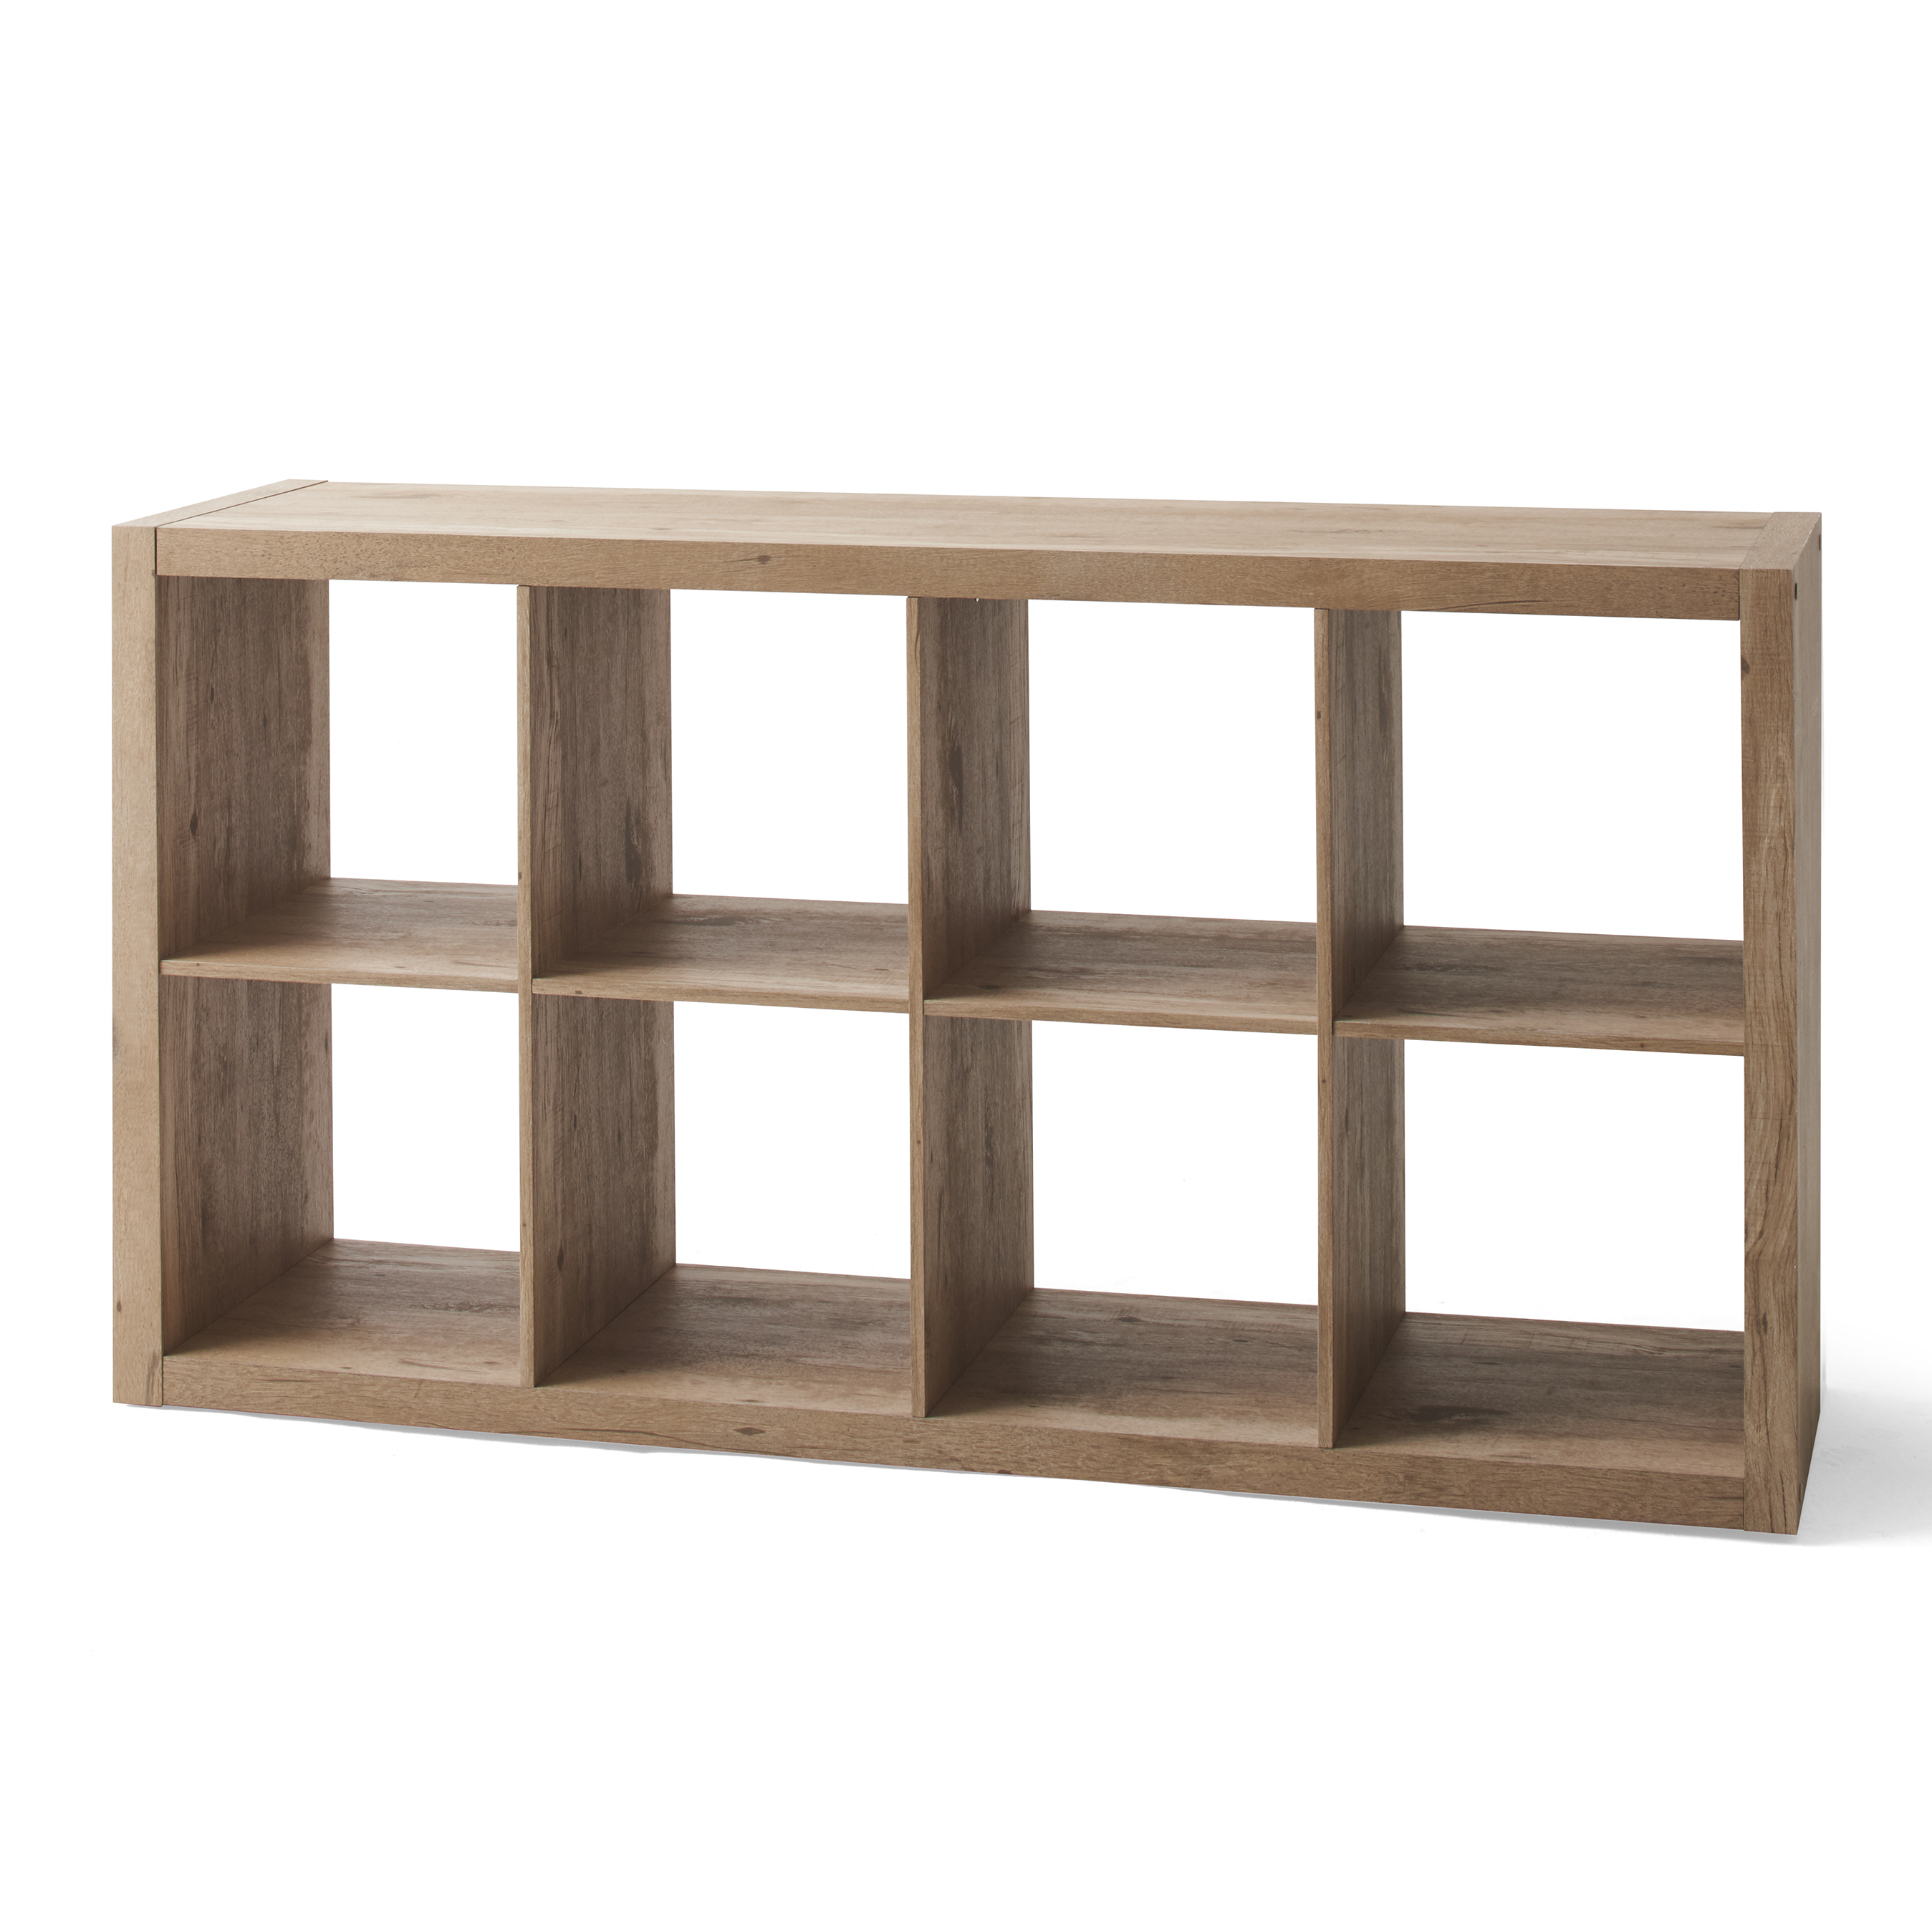 Better Homes /& Gardens 8-Cube Storage Organizer Natural Finishes